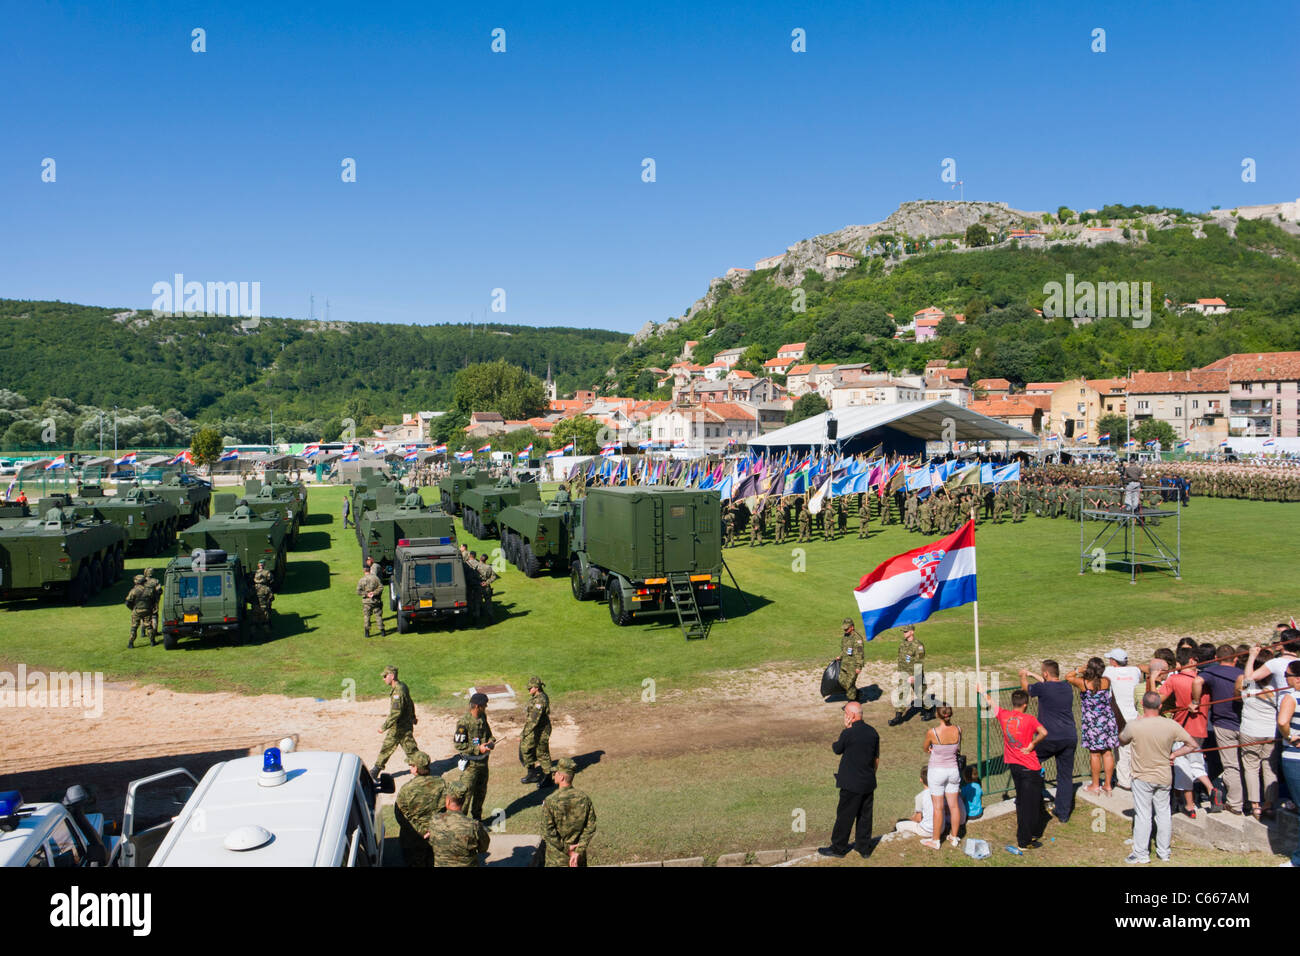 16th anniversary of the Croat army Operation Storm in the town of Knin, Aug 05. 2011 - Stock Image